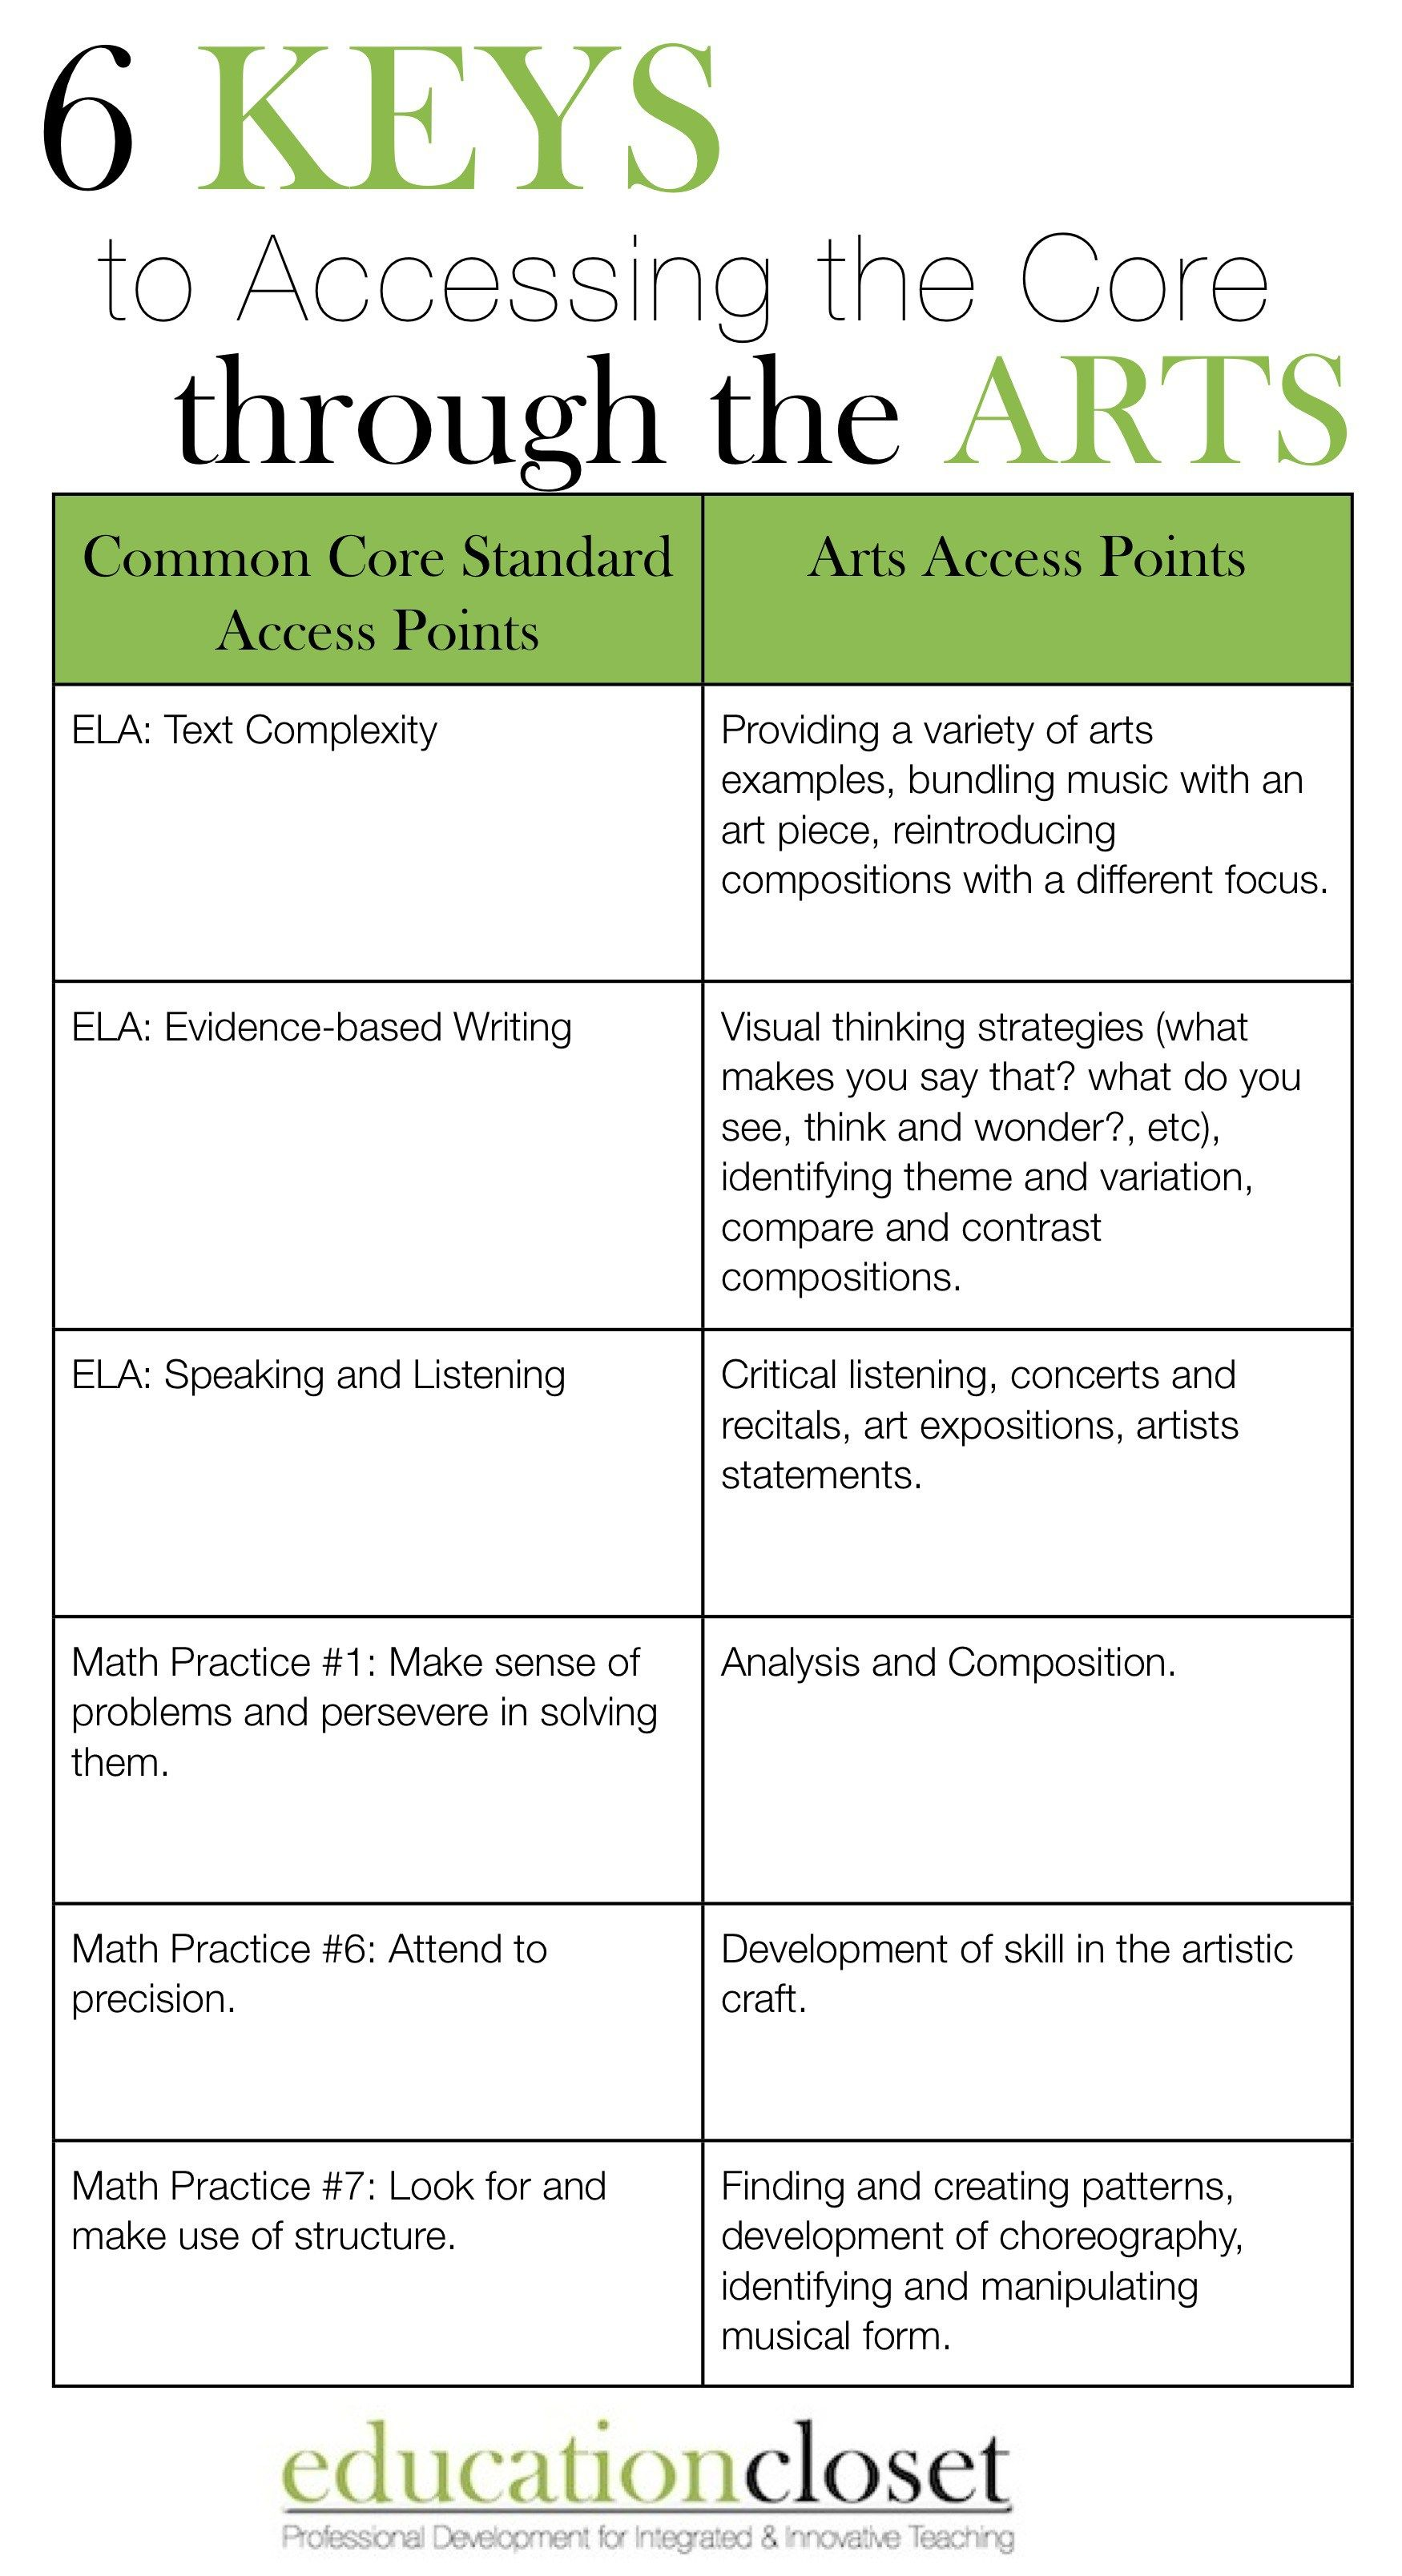 6 Keys To Accessing Common Core Through The Arts